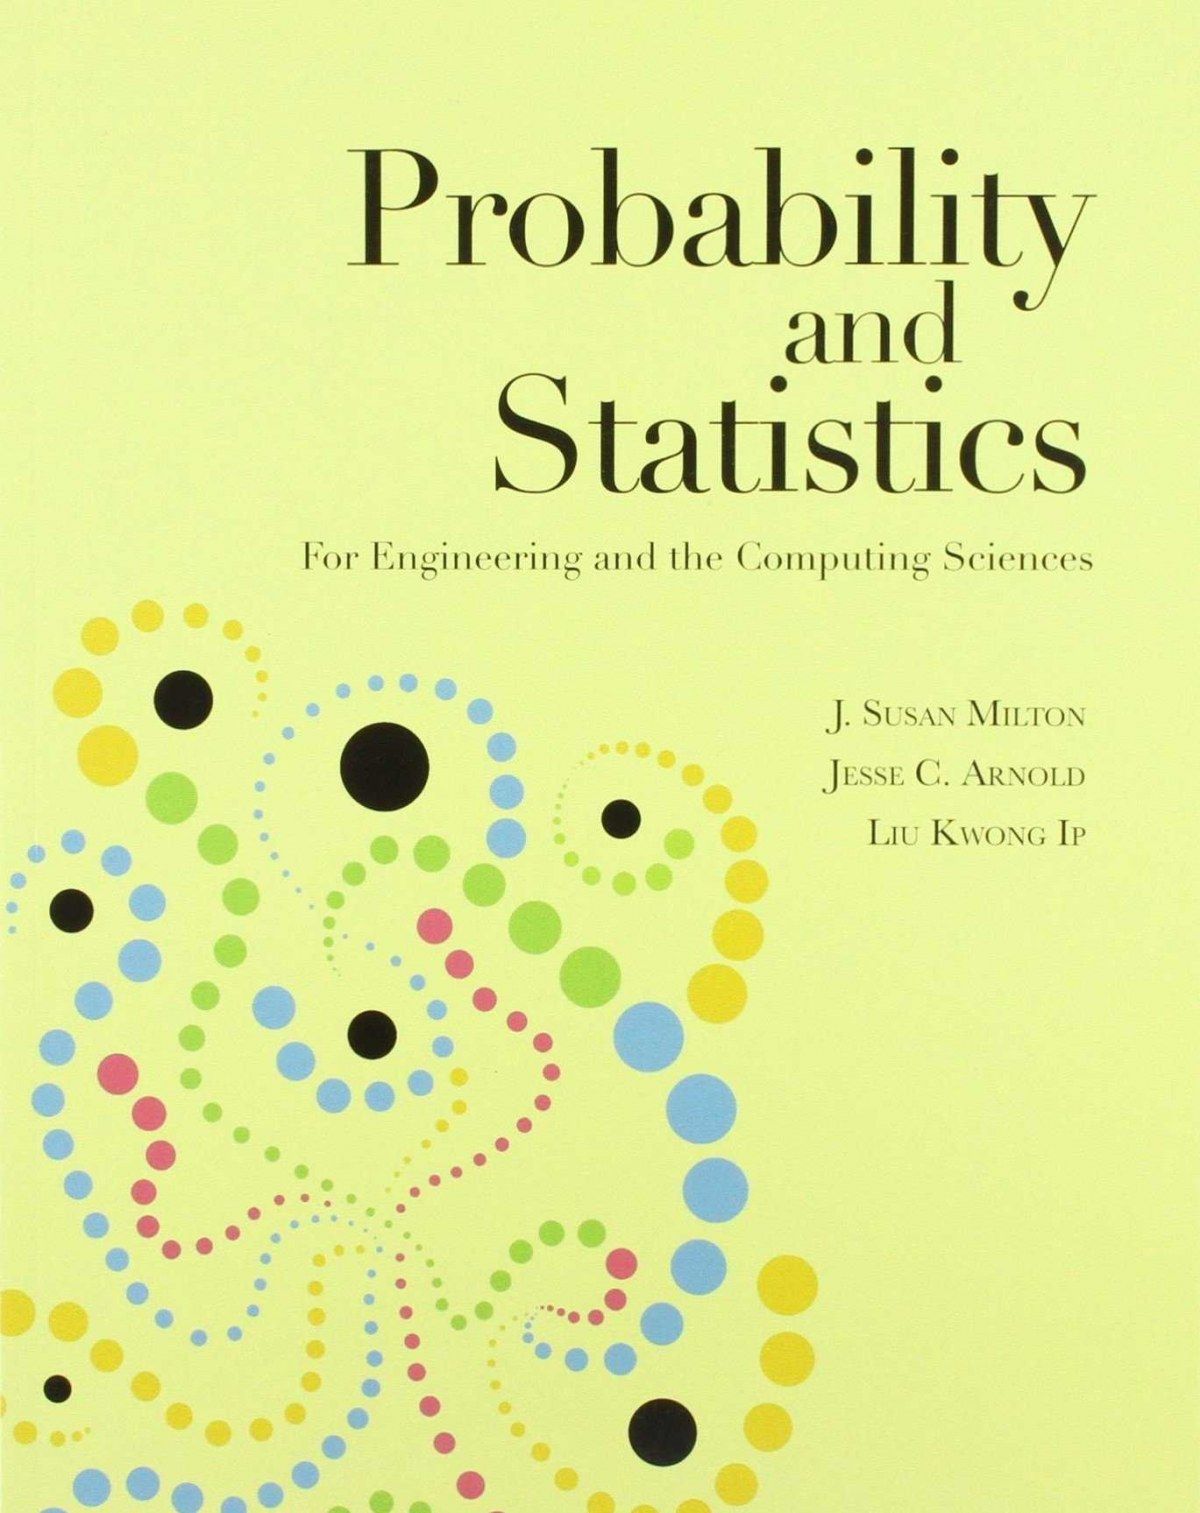 Probability and statistics for engineering and the computing sciences